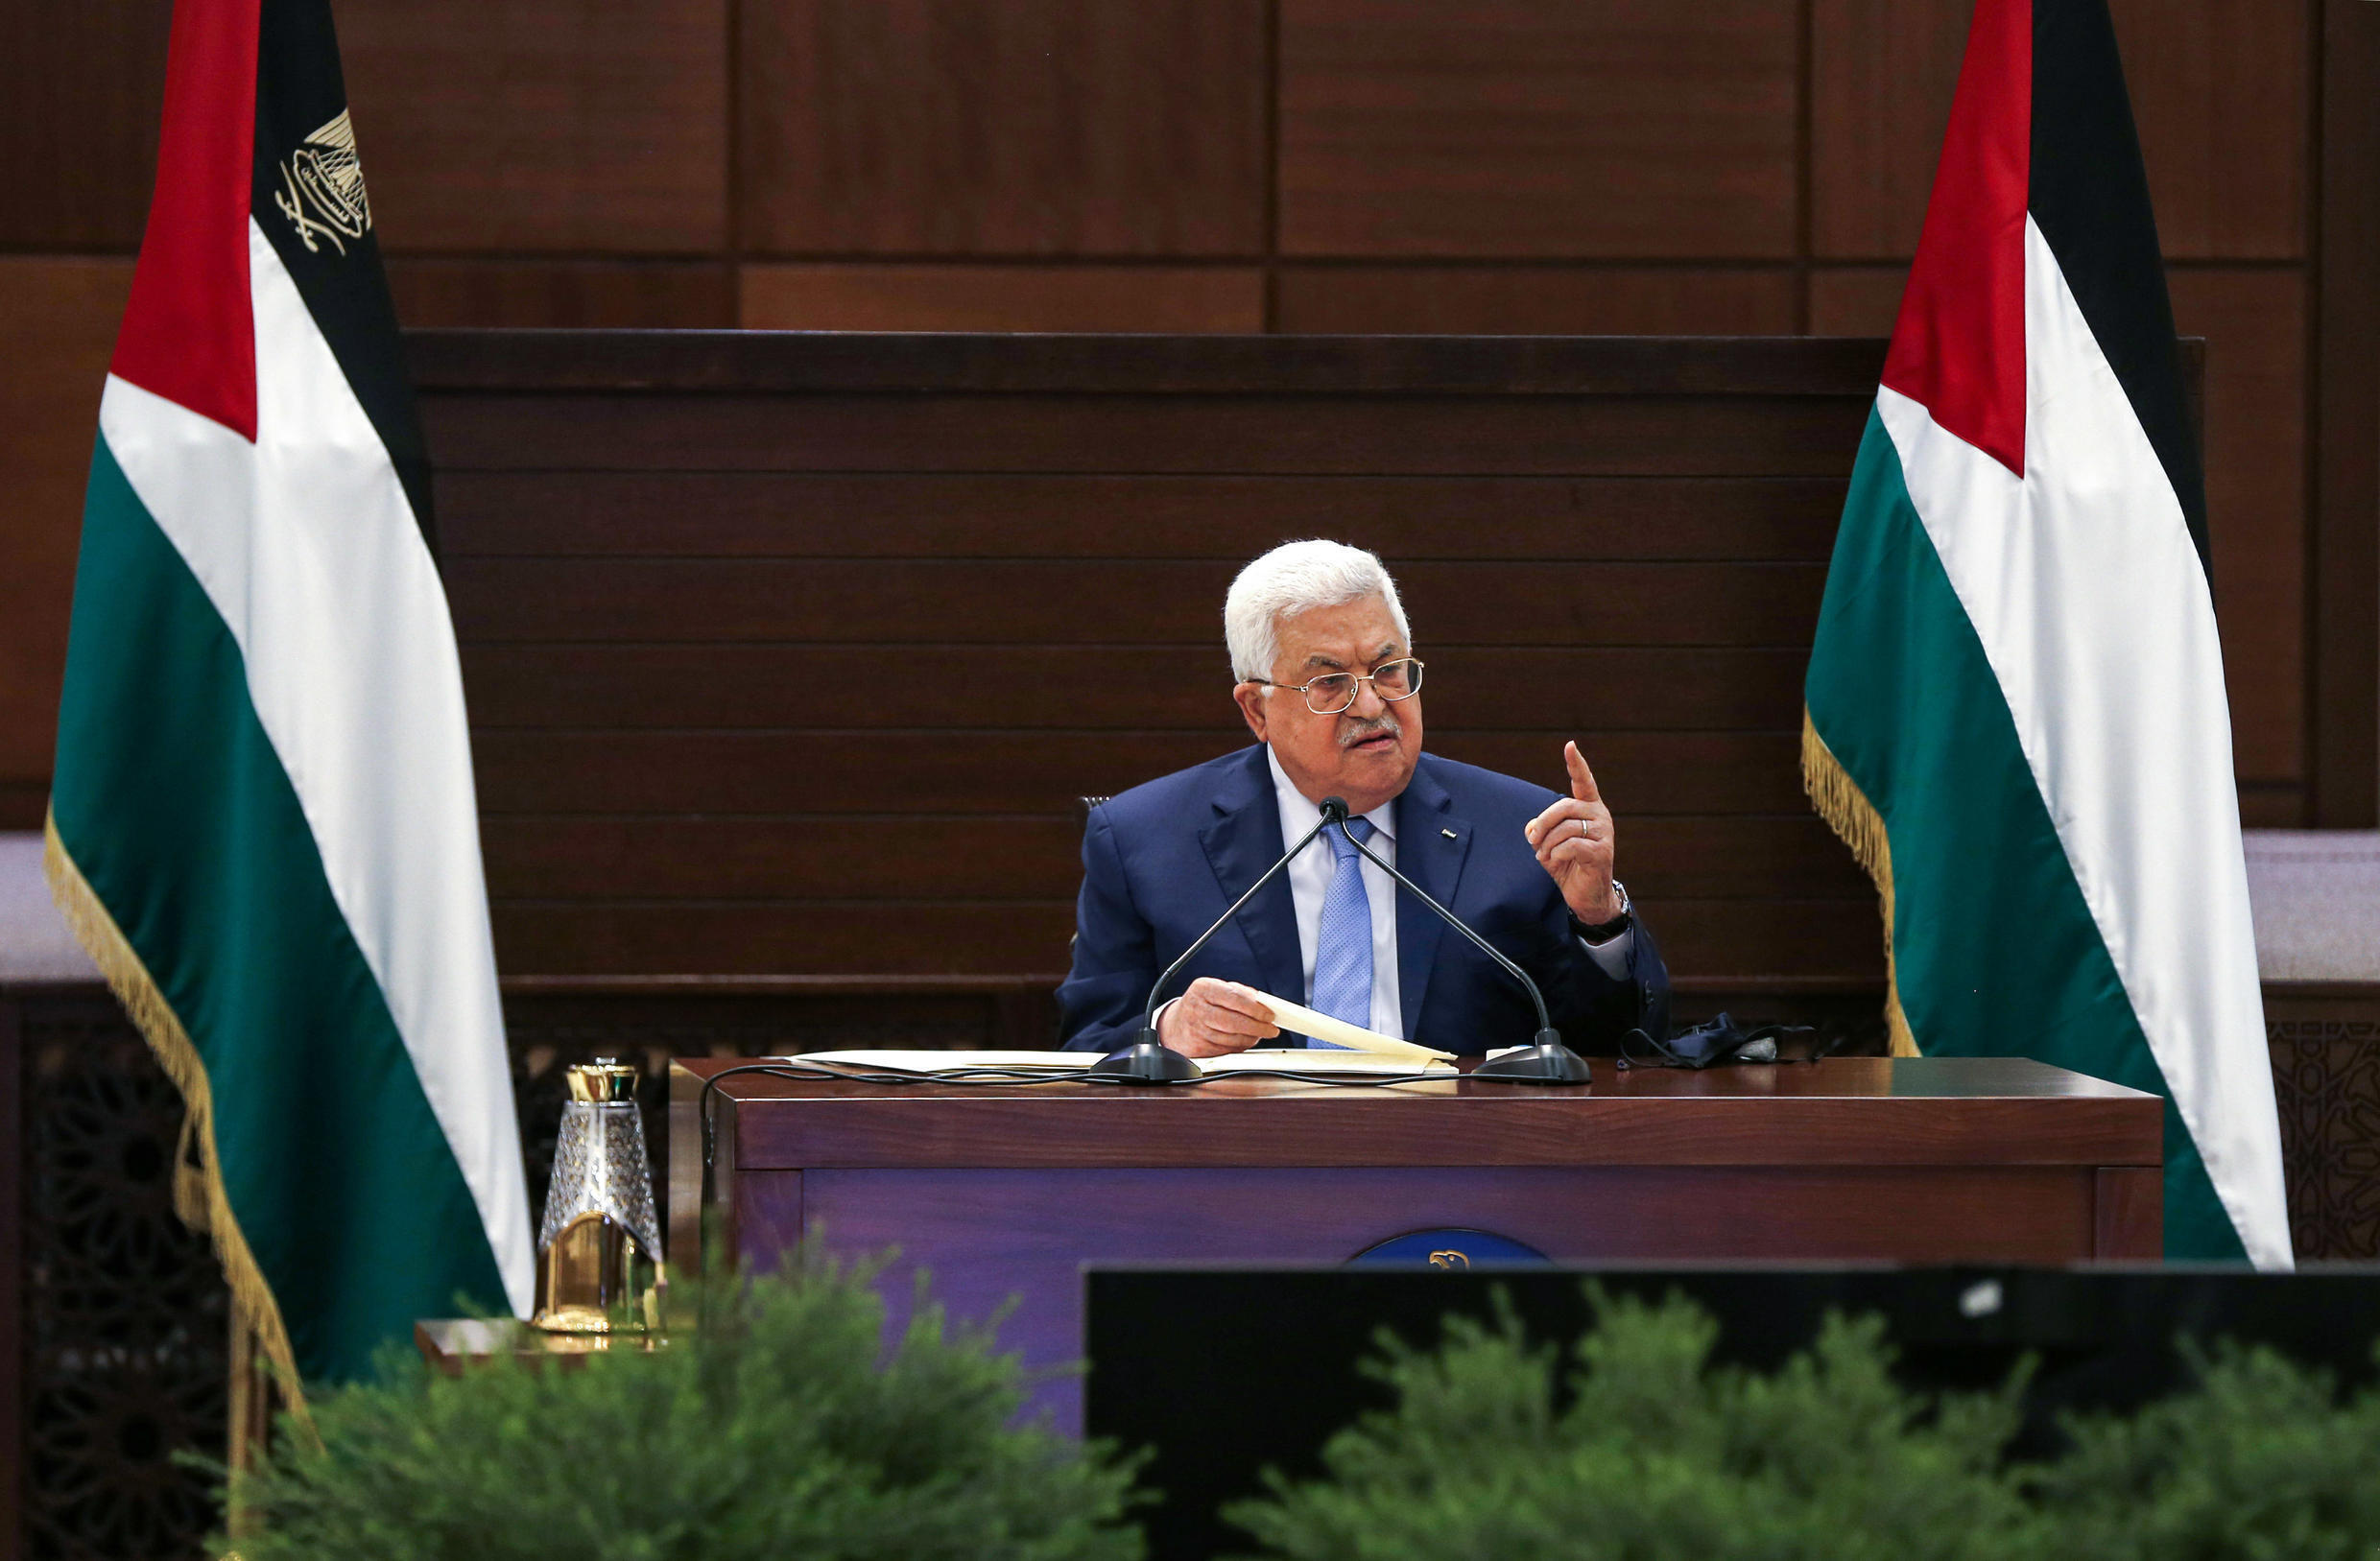 Palestinian president Mahmud Abbas, seen in Ramallah in September 2020, has said the Palestinian Authority will restore cooperation with Israel